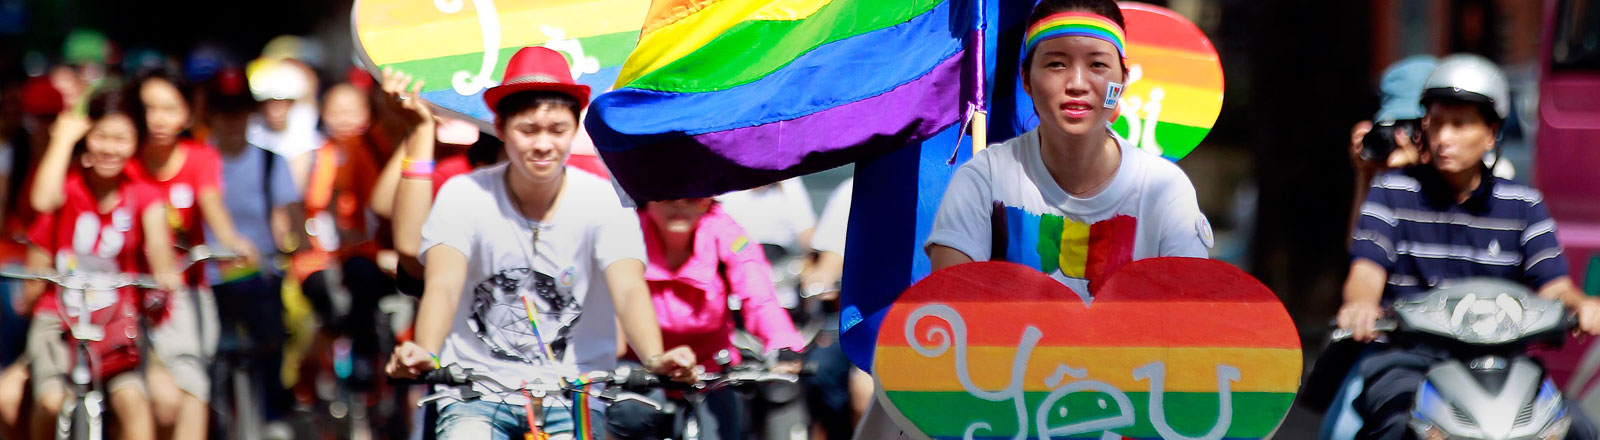 Die Gay Pride in Hanoi, Vietnam.